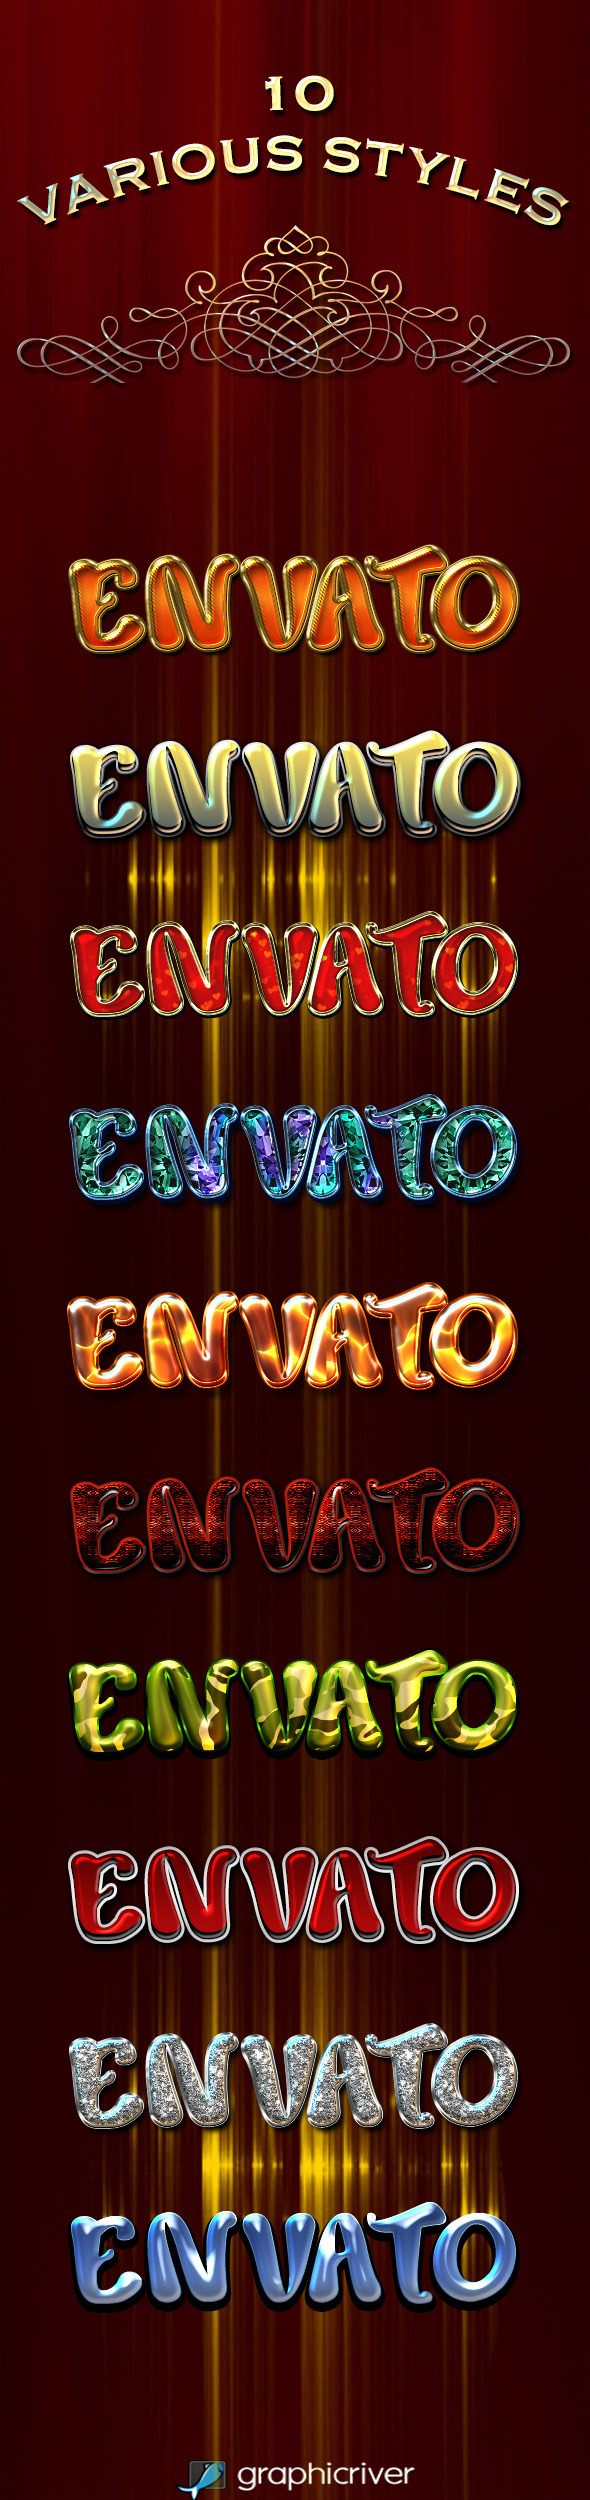 10 Various Styles - Text Effects Styles